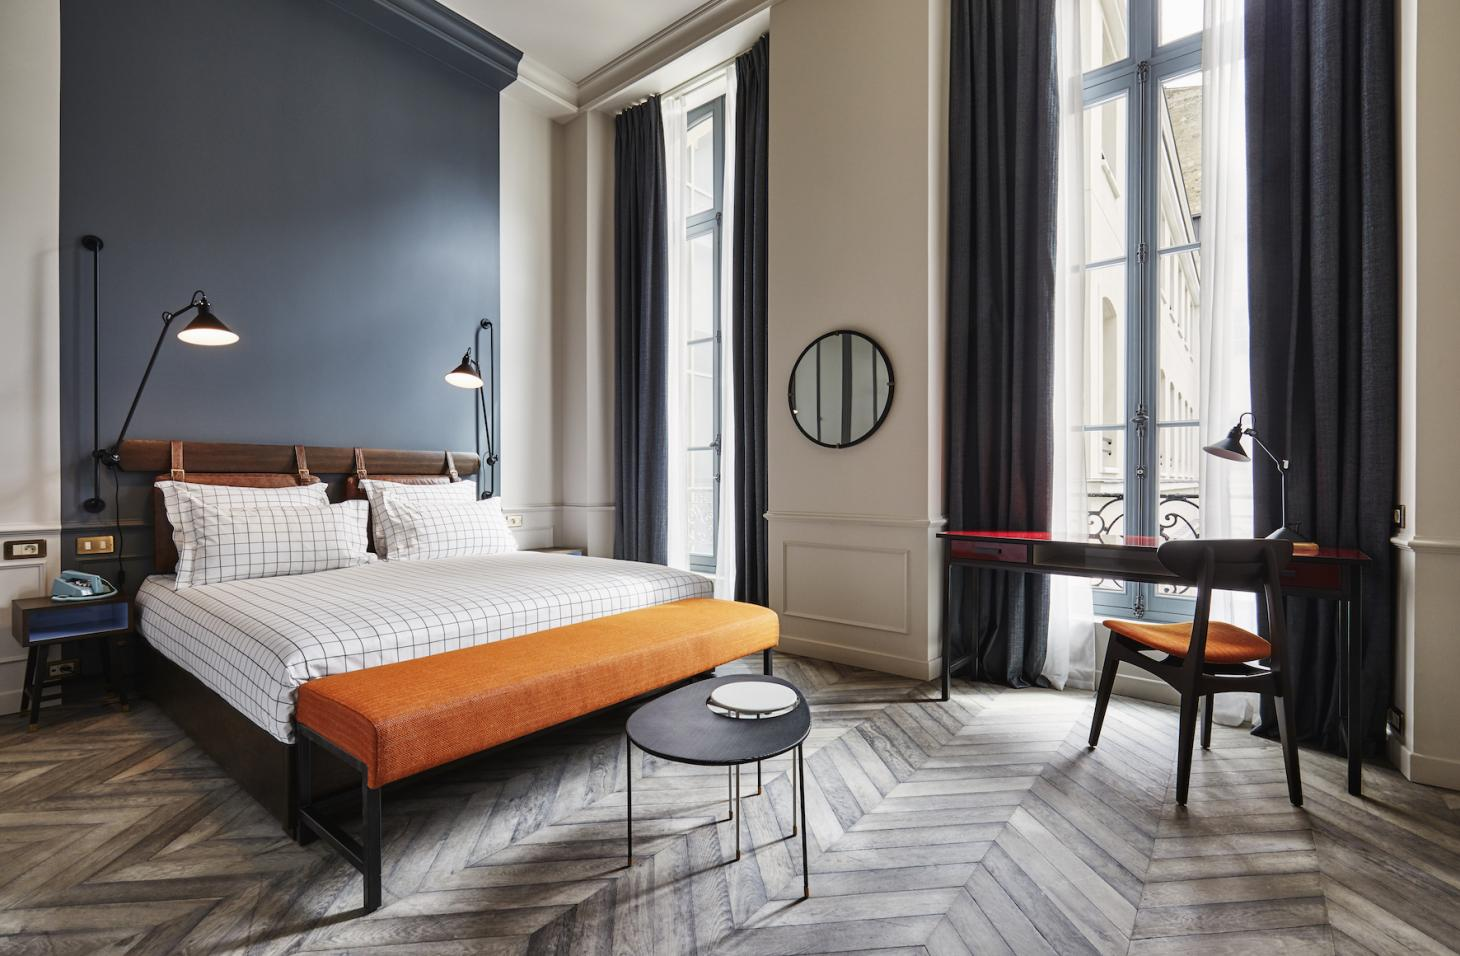 The 12 hotels in Paris worth checking into